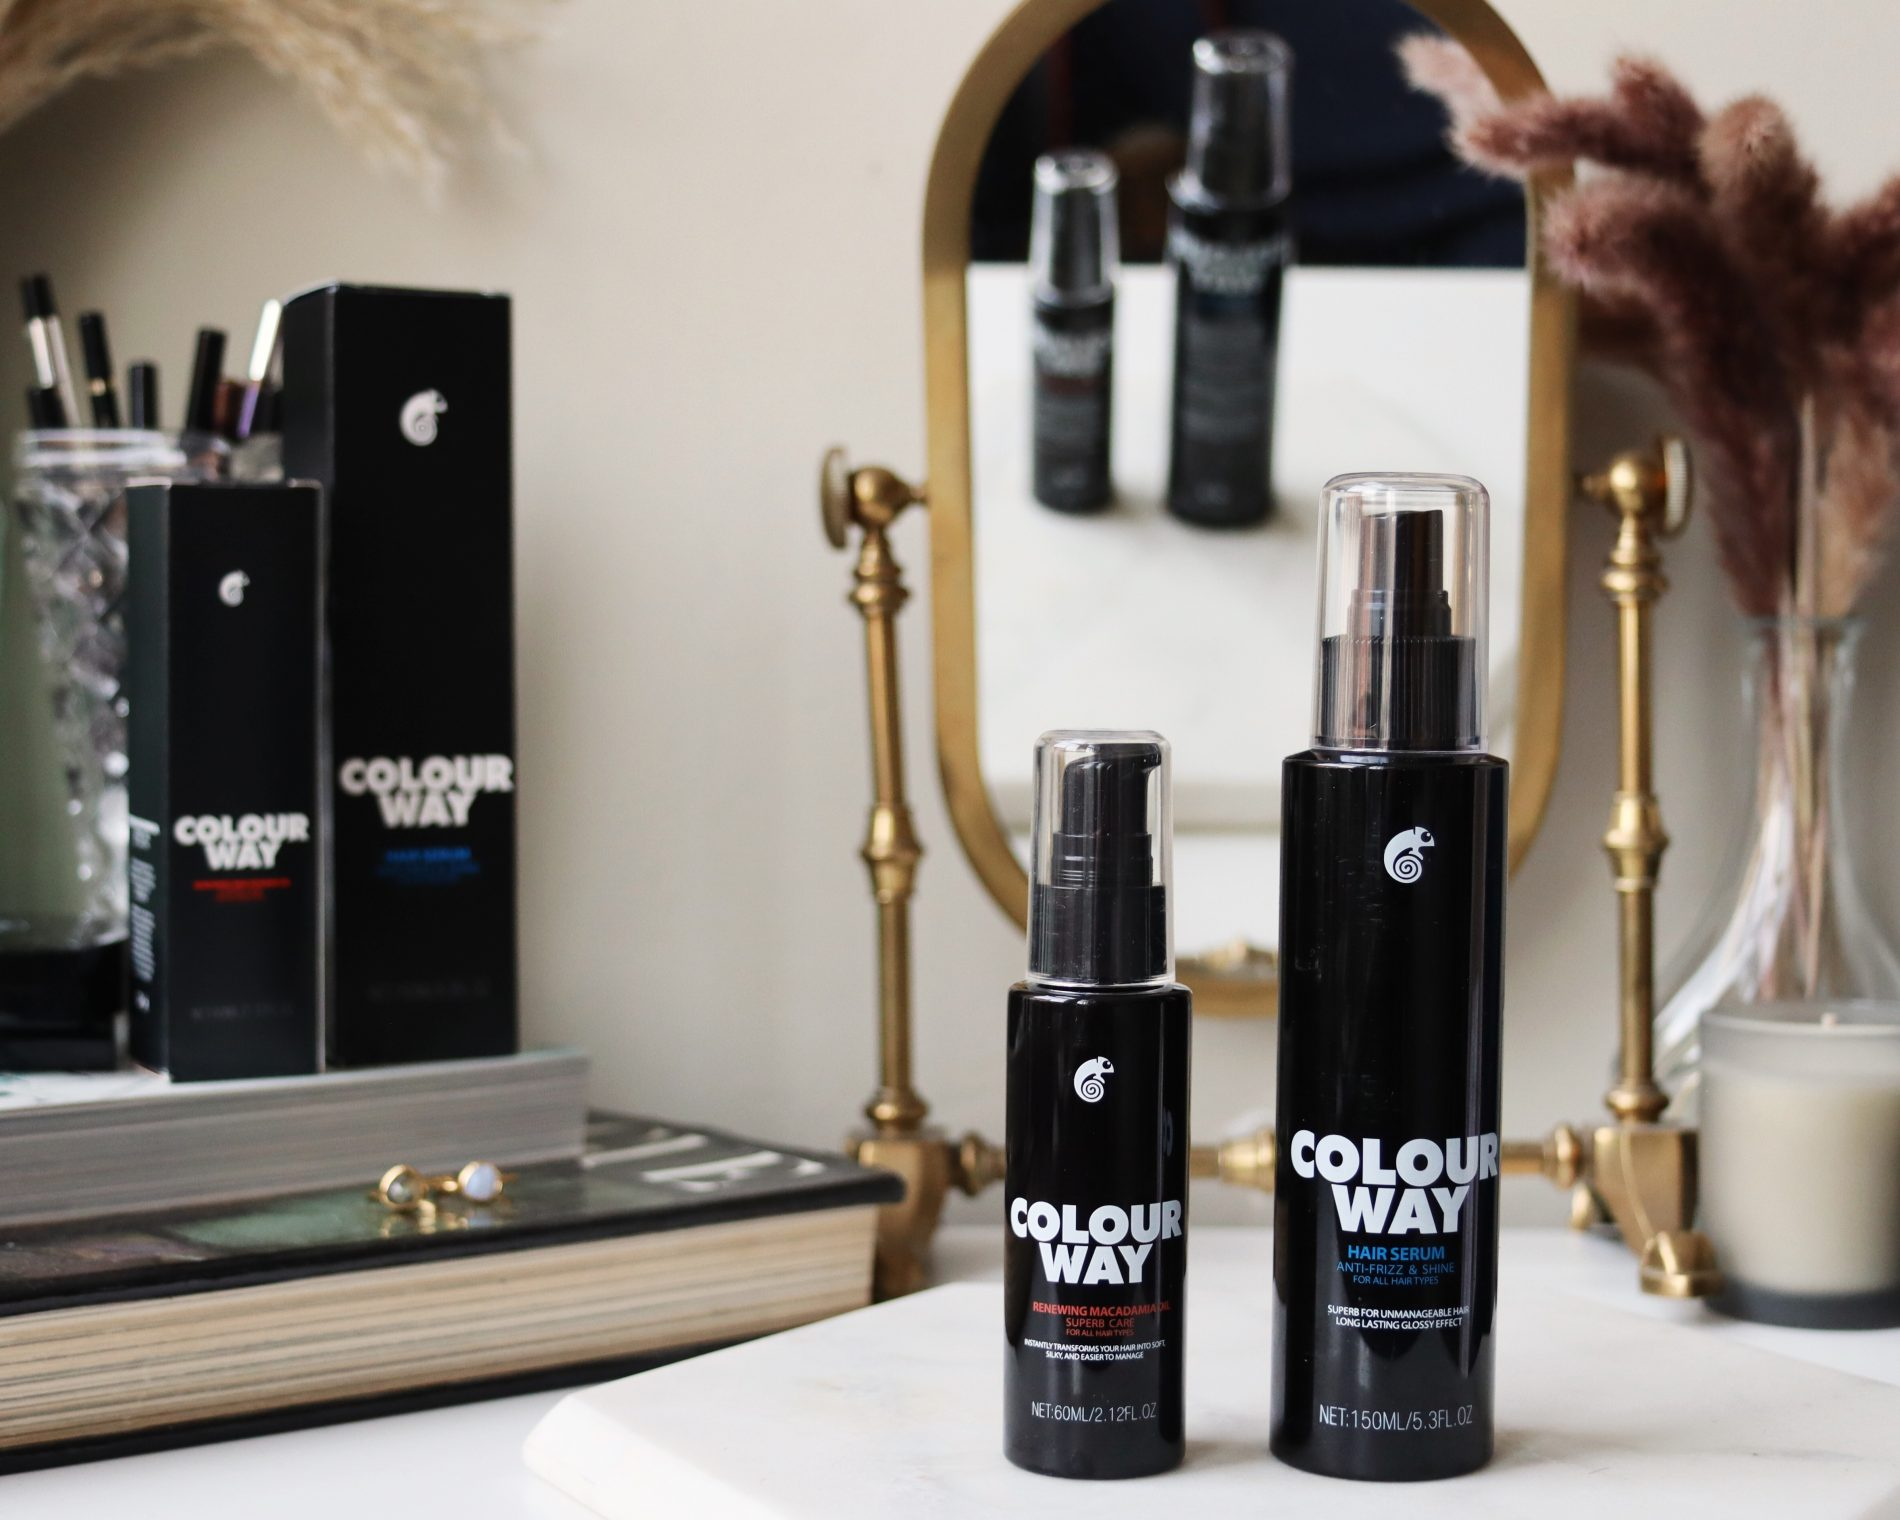 Colourway Haircare hair styling